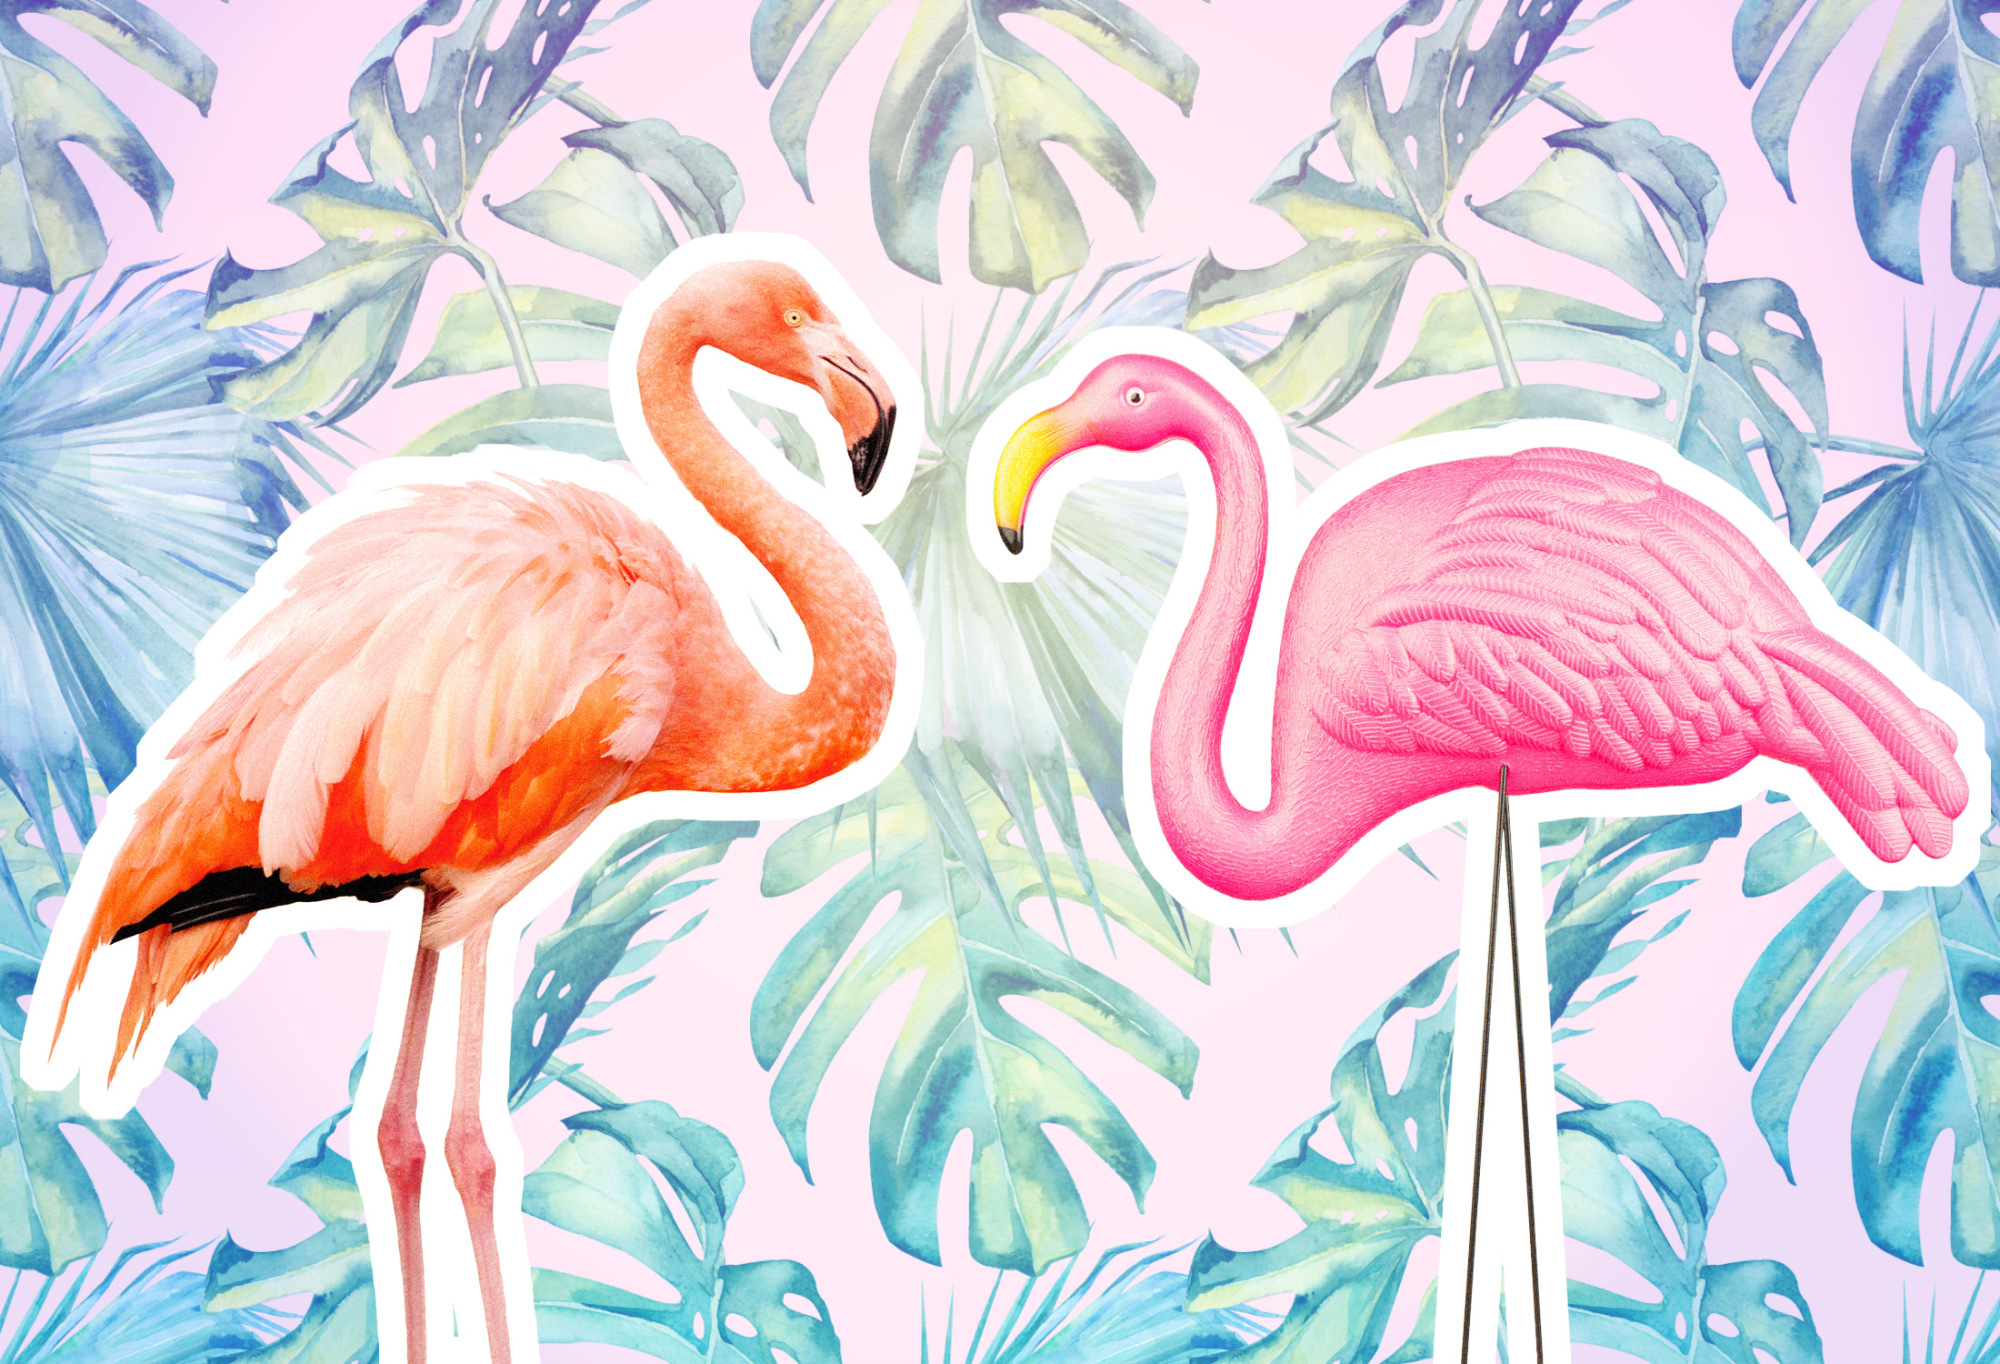 Heres Who to Blame for the Resurgence of Flamingo Kitsch